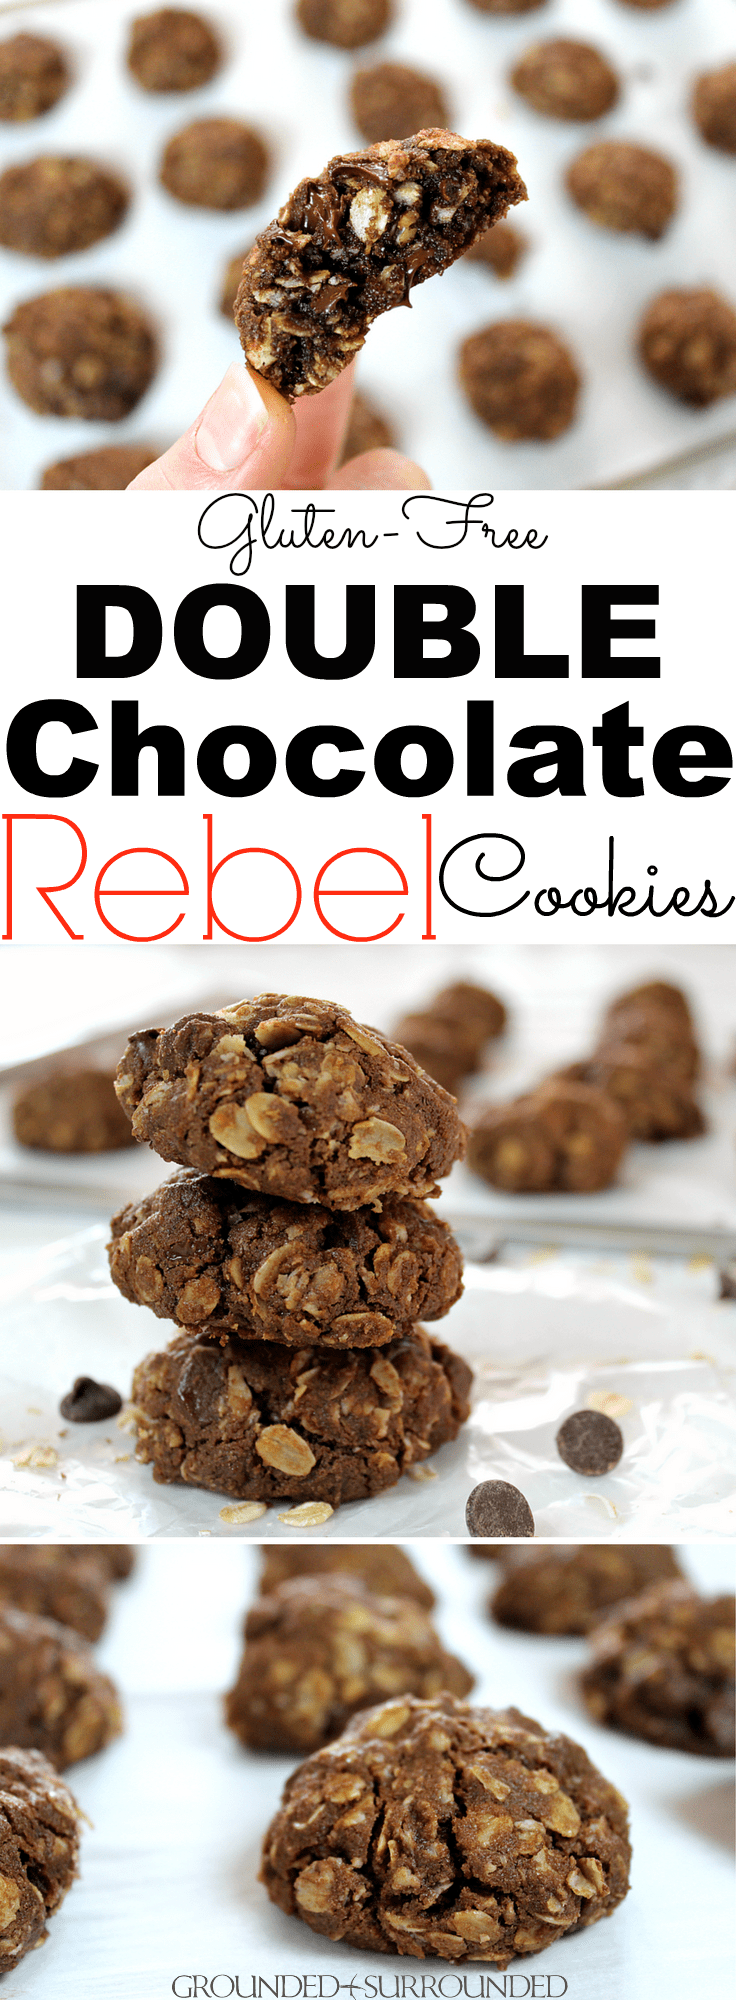 The BEST Gluten Free Double Chocolate REBEL Cookies | This is my husband's favorite cookie recipe! These cookies are easy to prepare, soft and chewy in the center, and absolutely delicious. Use semi-sweet, dark, or white chocolate chips for a truly special treat. Hot out of the oven these cocoa and oatmeal cookies are fudgy and sweet, but not too sweet! Just sweet enough that you can't resist going back for 2nds & 3rds of this simple snack!